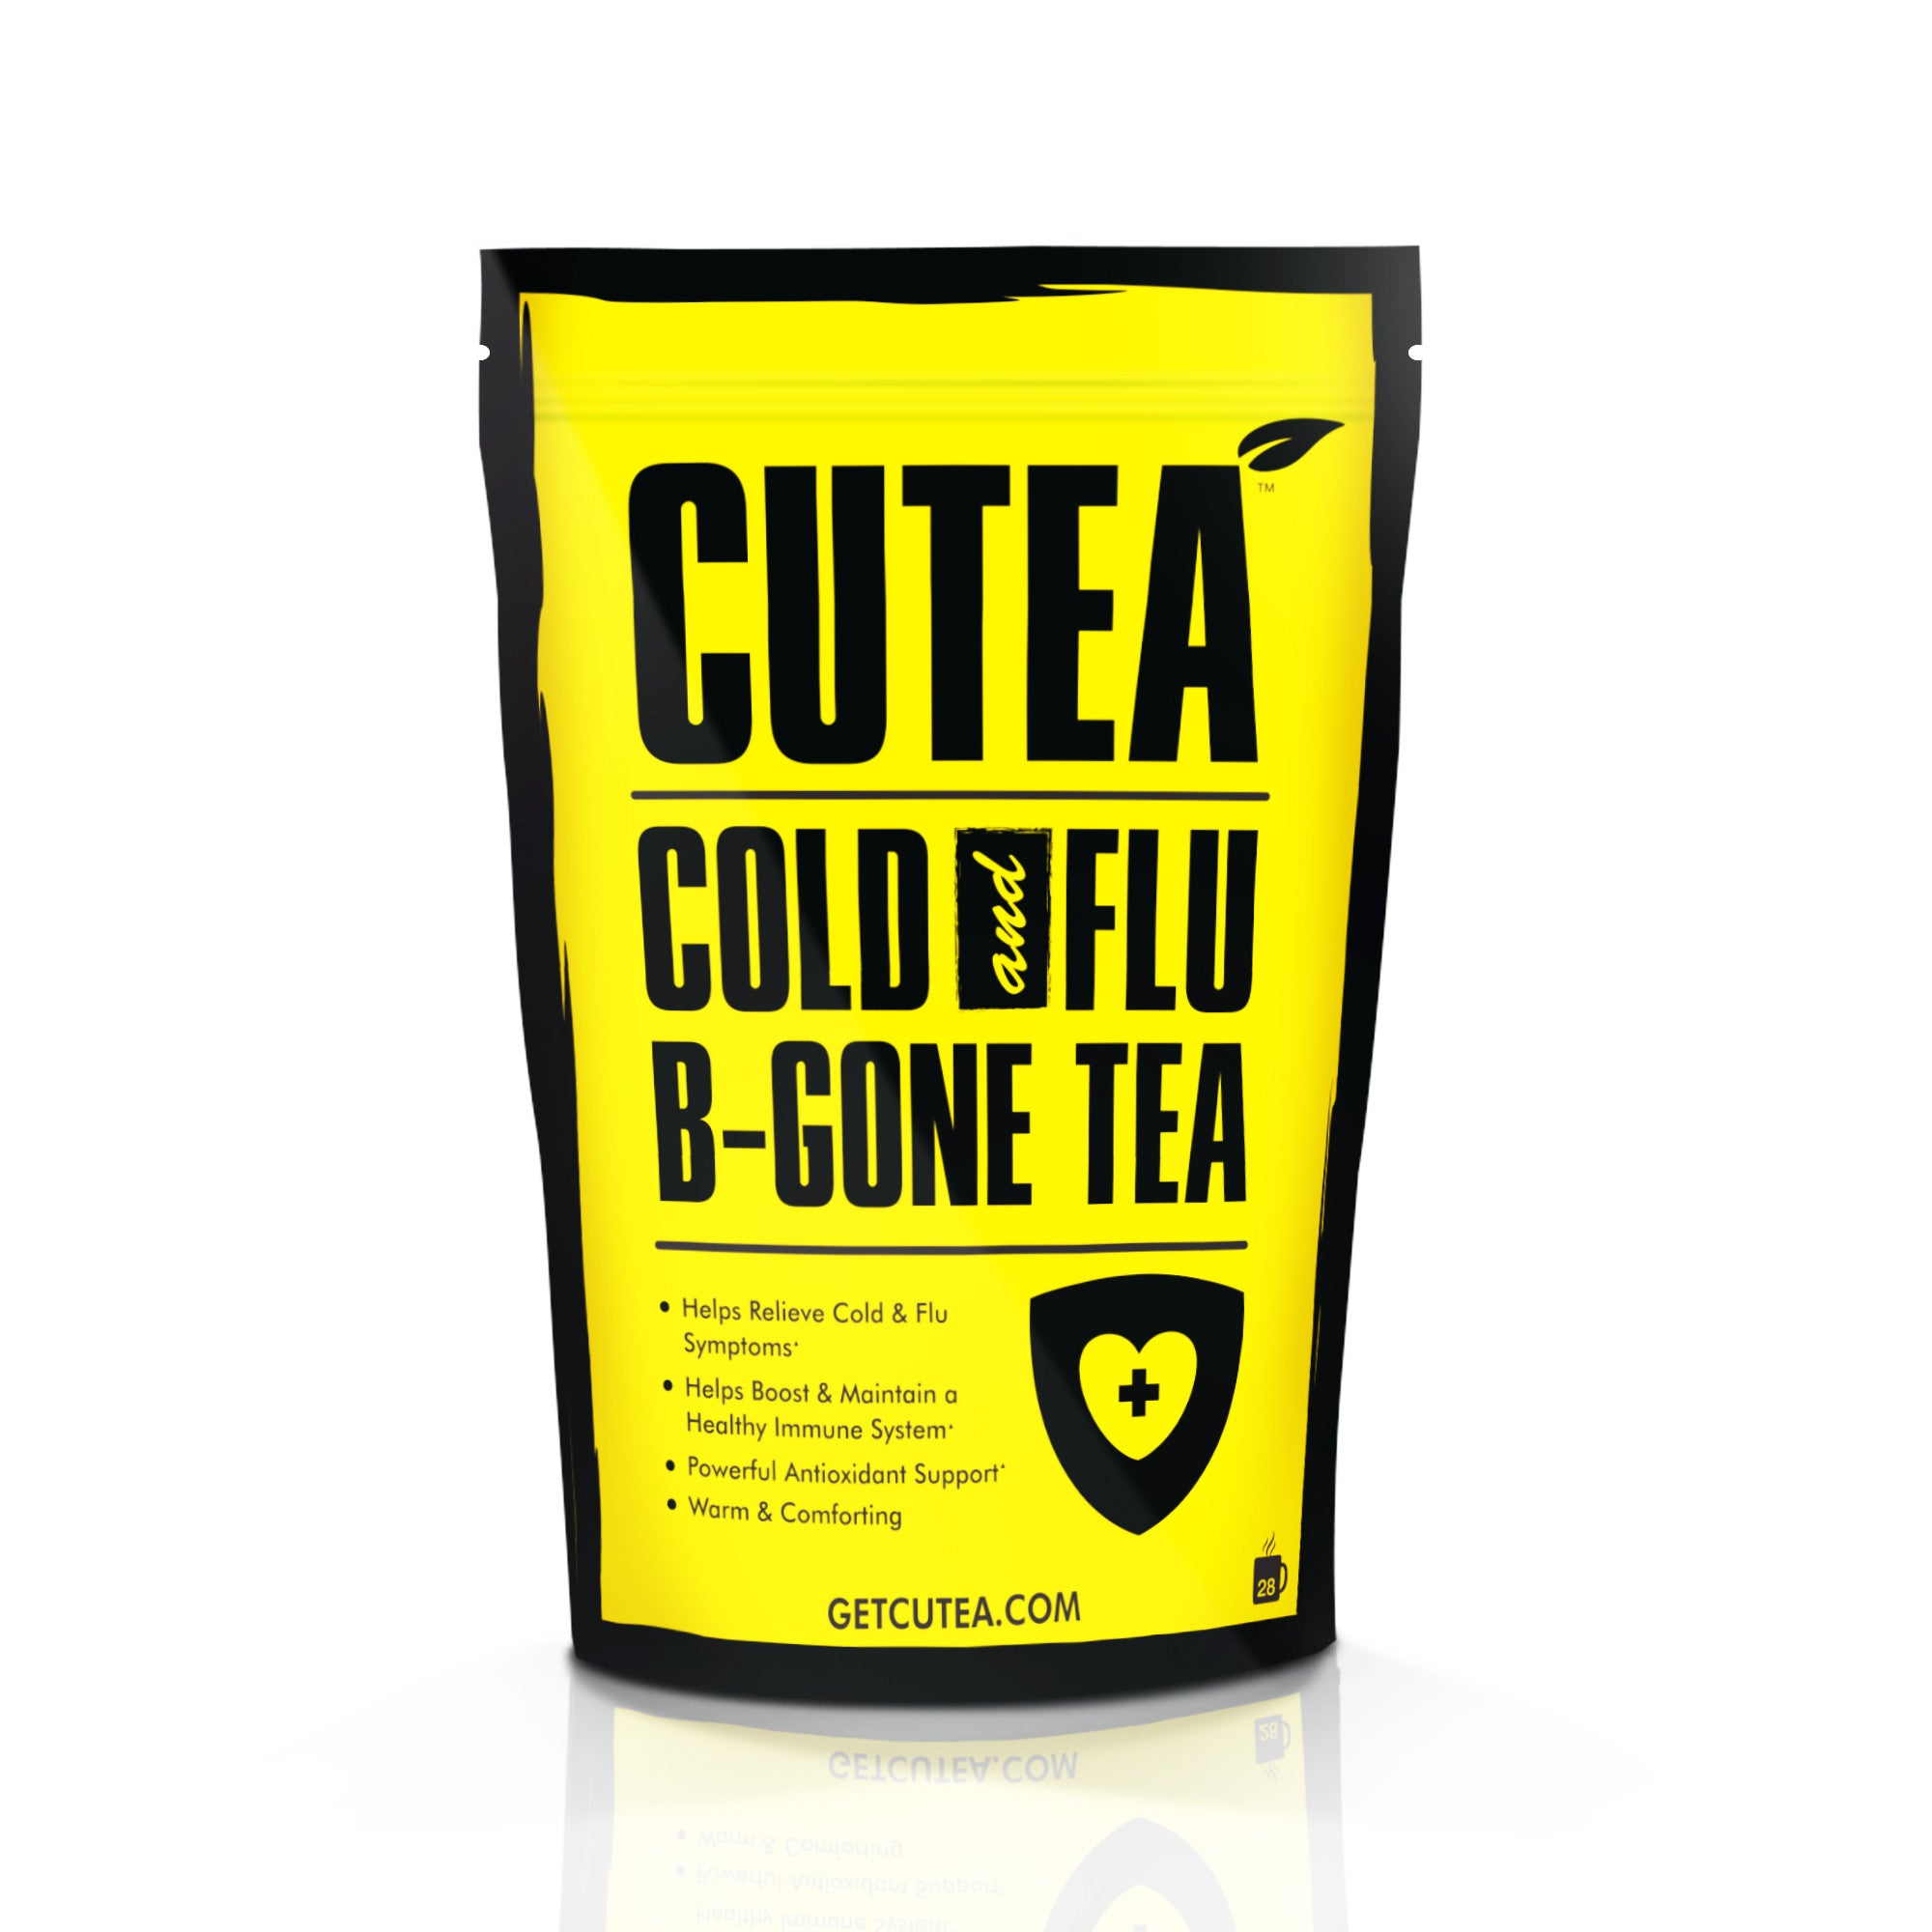 CUTEA Cold and Flu B-Gone Tea - 28 Bags